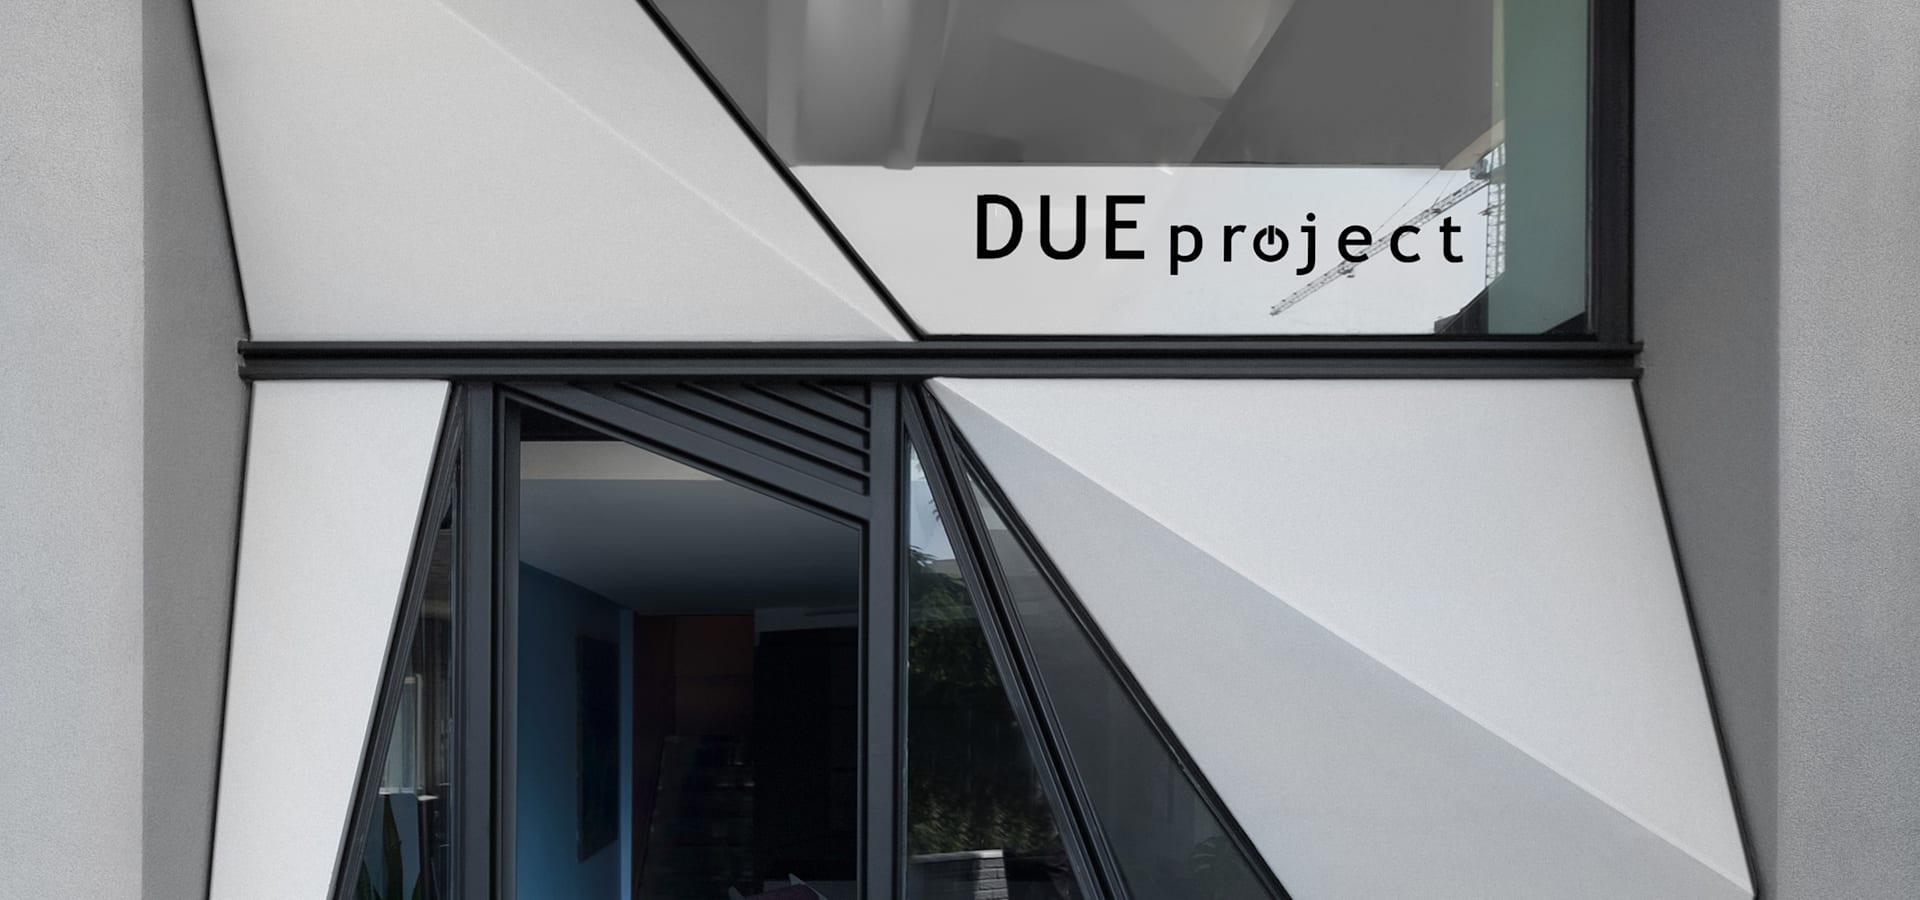 Due project